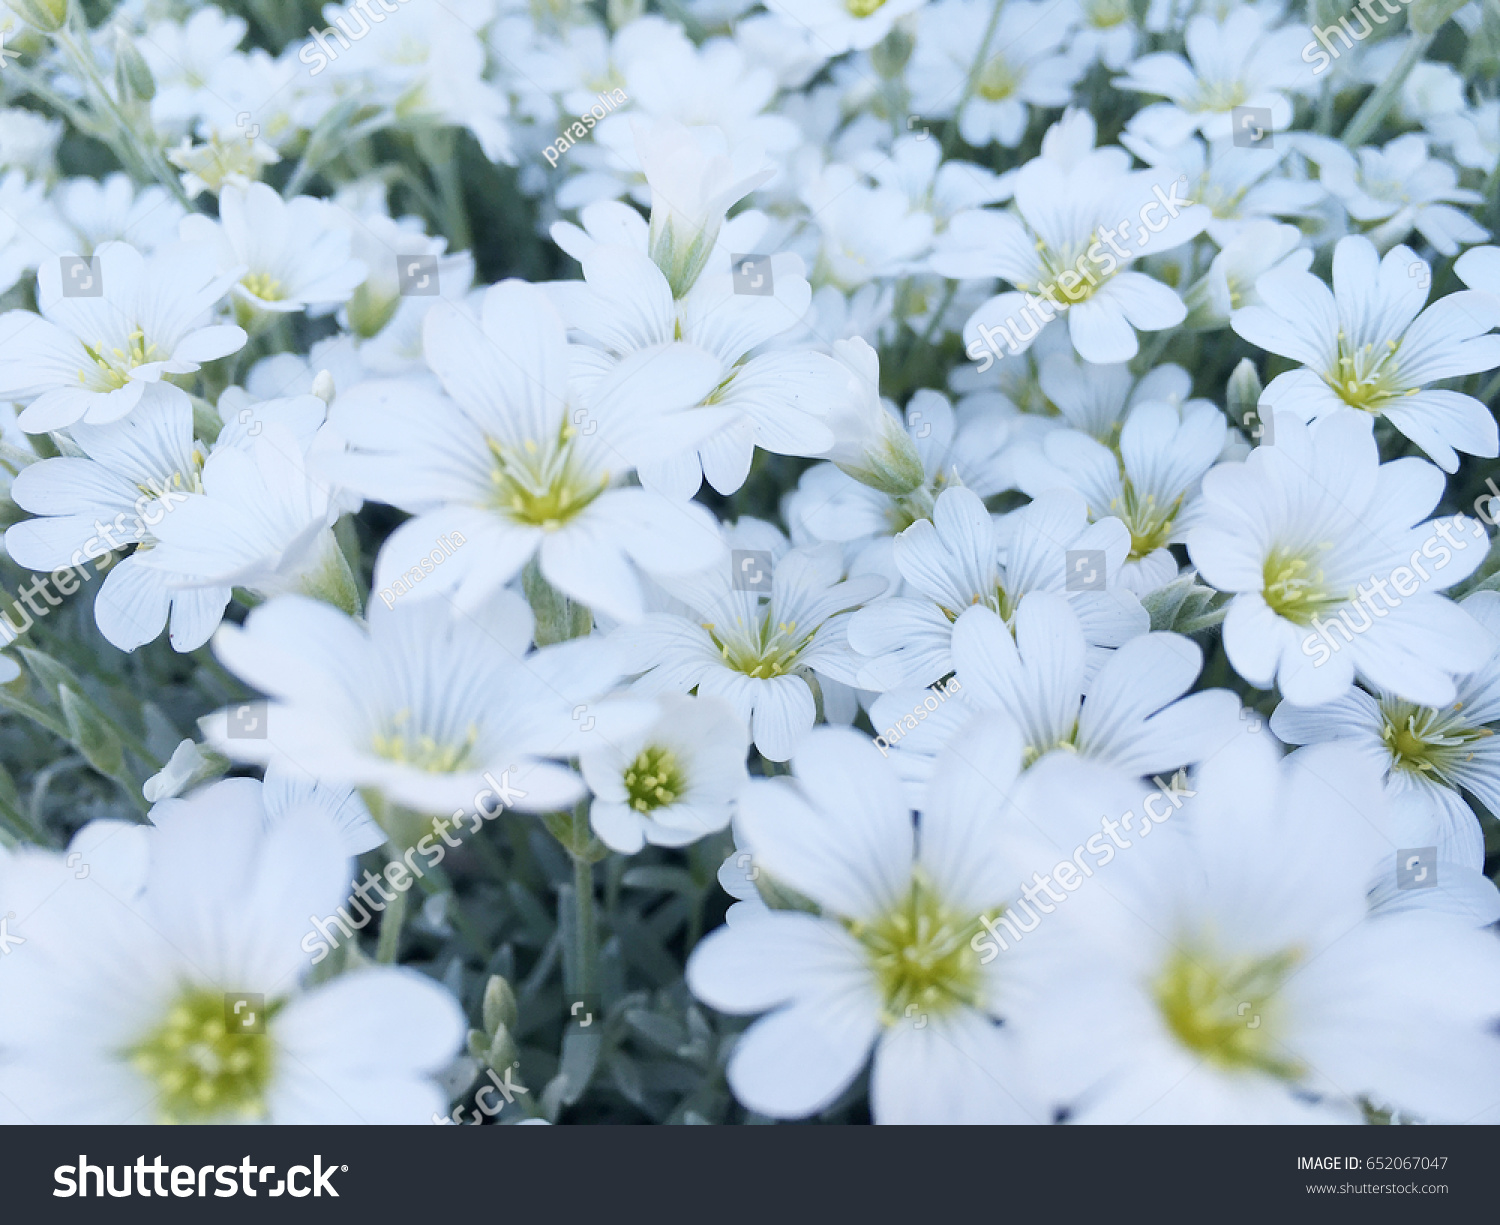 Spring White Flowers Small White Flowers White Flower Background